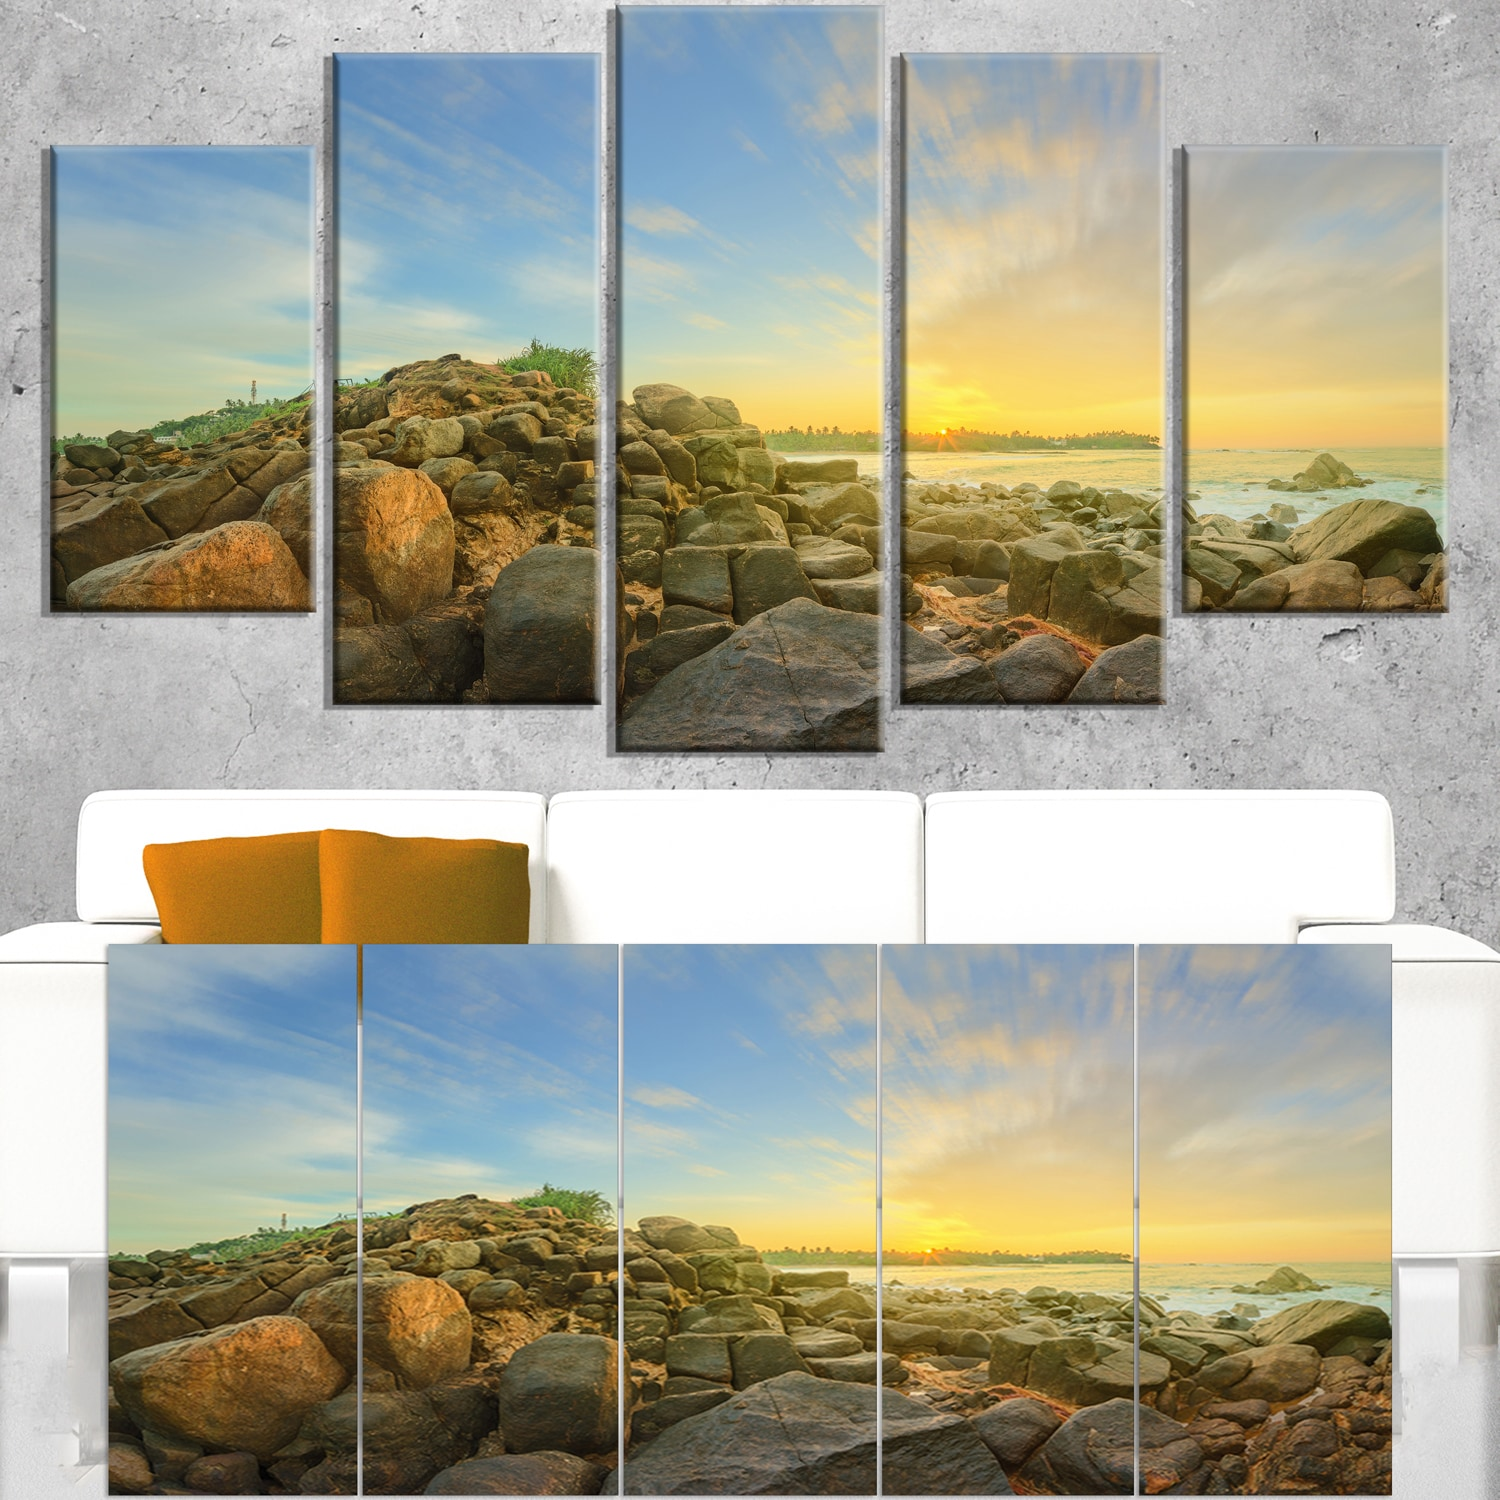 DESIGN ART Untouched Romantic Beach of Sri Lanka - Landscape Artwork Canvas - Blue 60 in. wide x 28 in. high - 5 Equal Panels